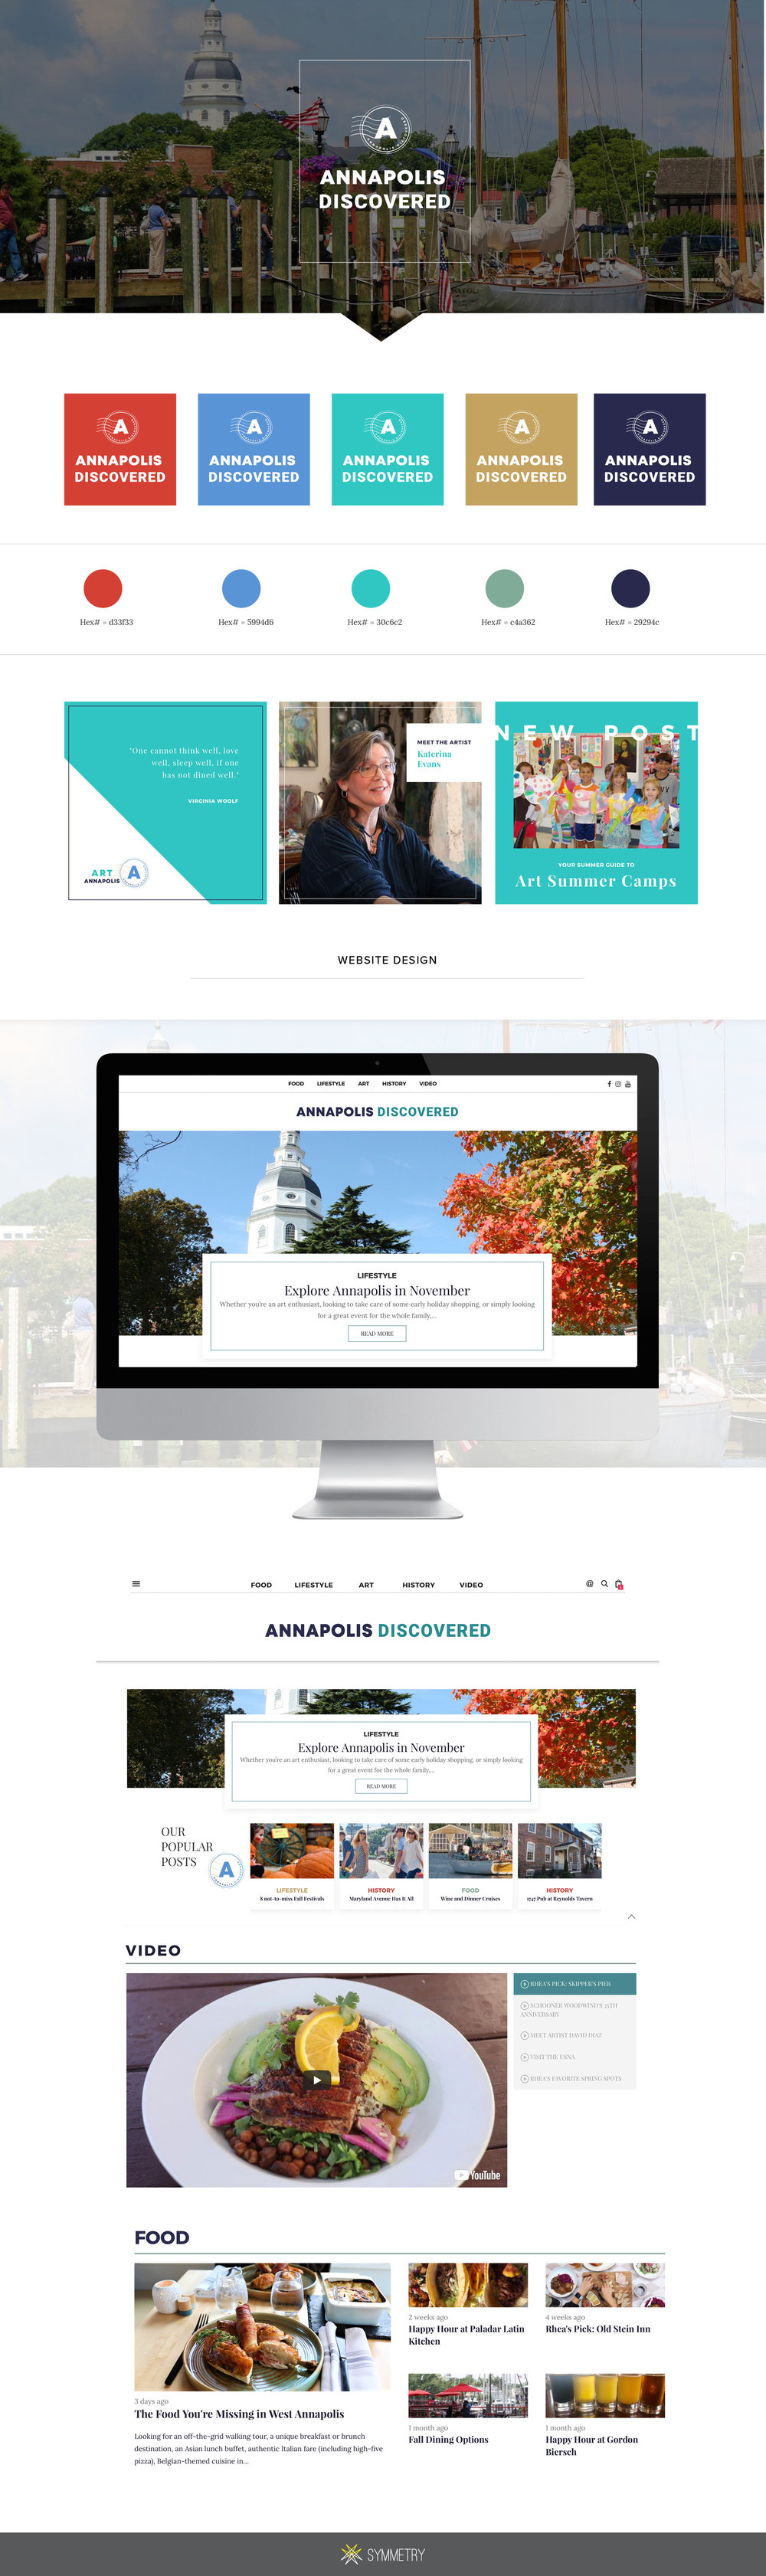 Website-Template_Annapolis-Discovered-2-2.jpg